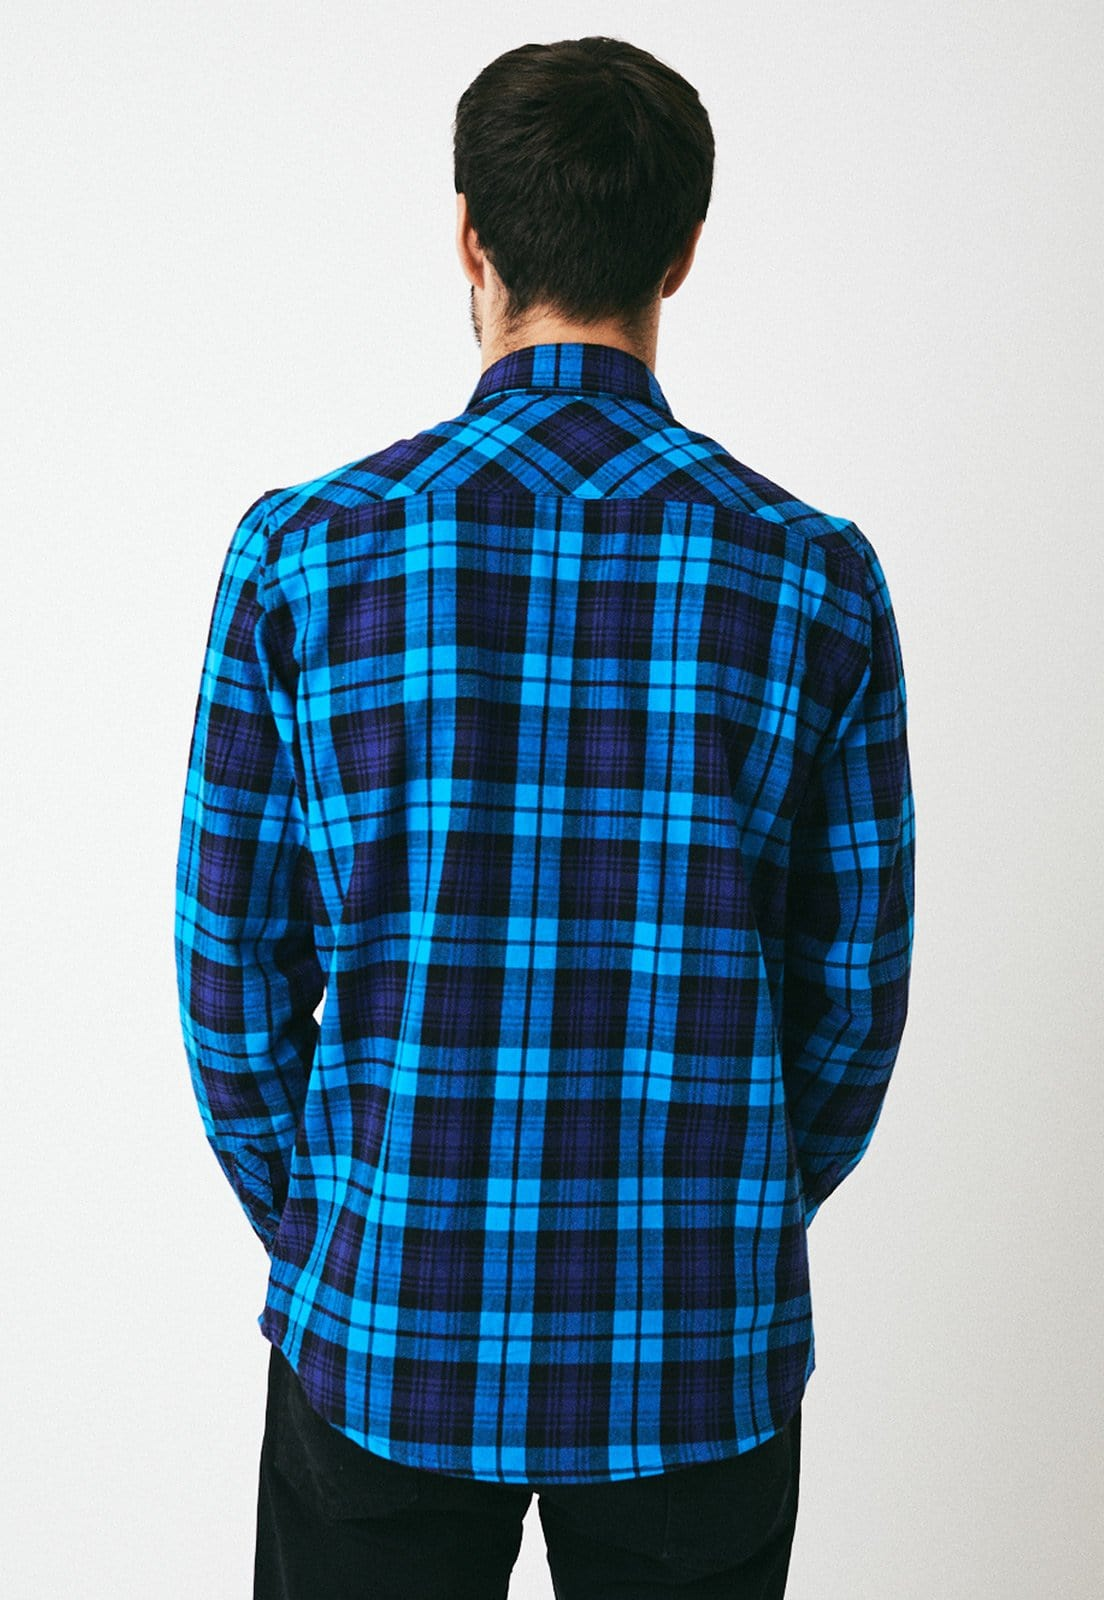 Blue flannel - libre_scl